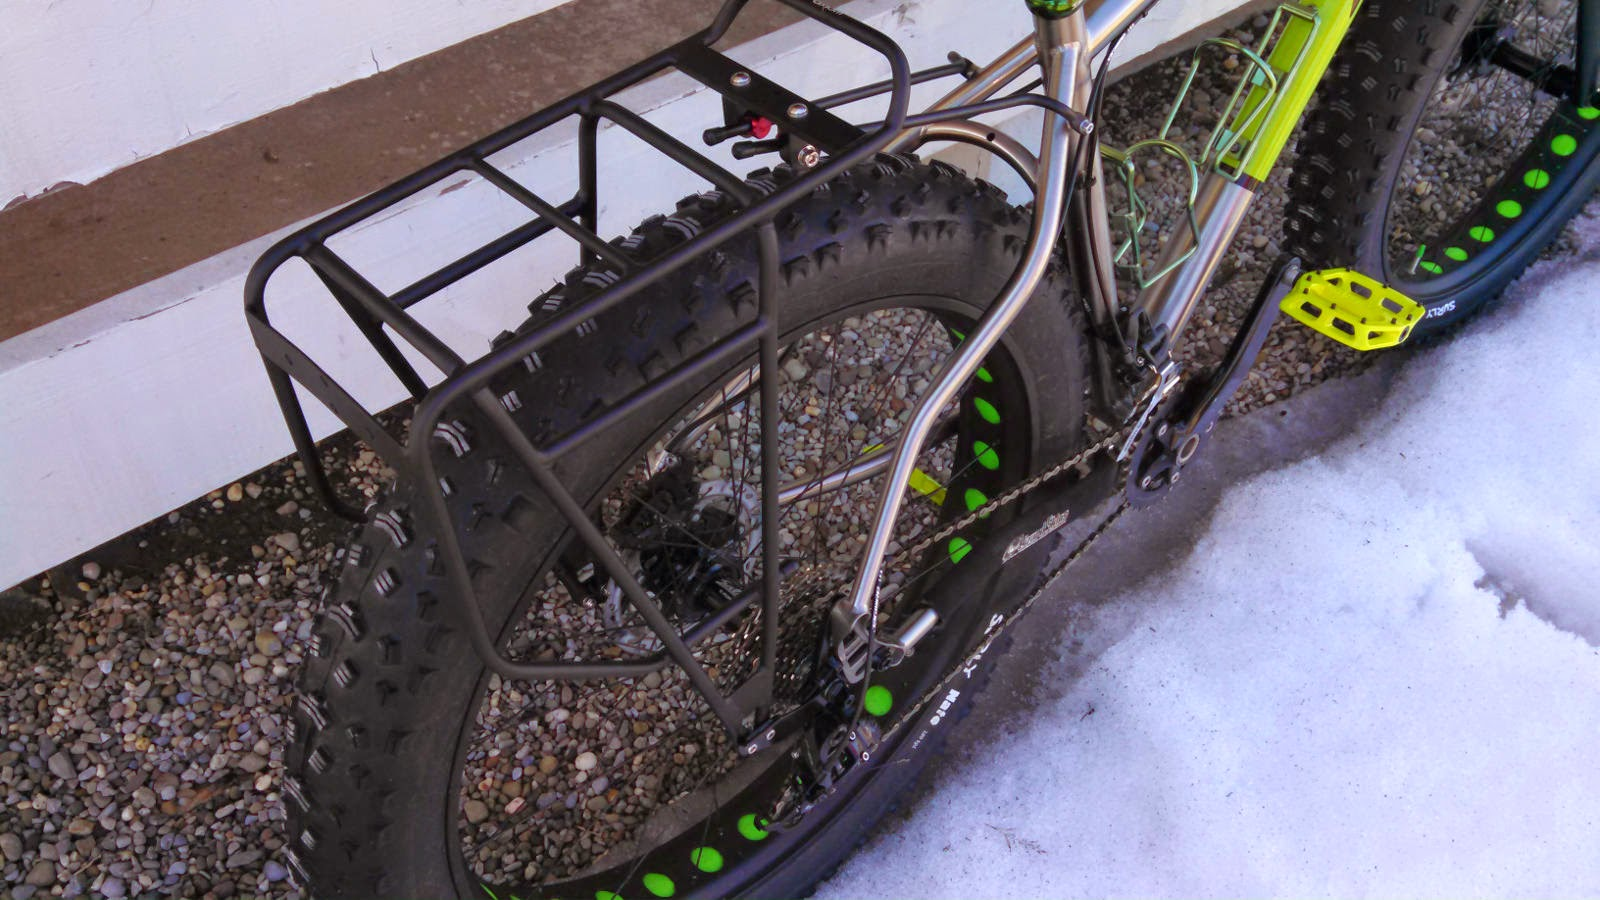 Century Cycles Blog: A Fat Rack for your Fat Bike